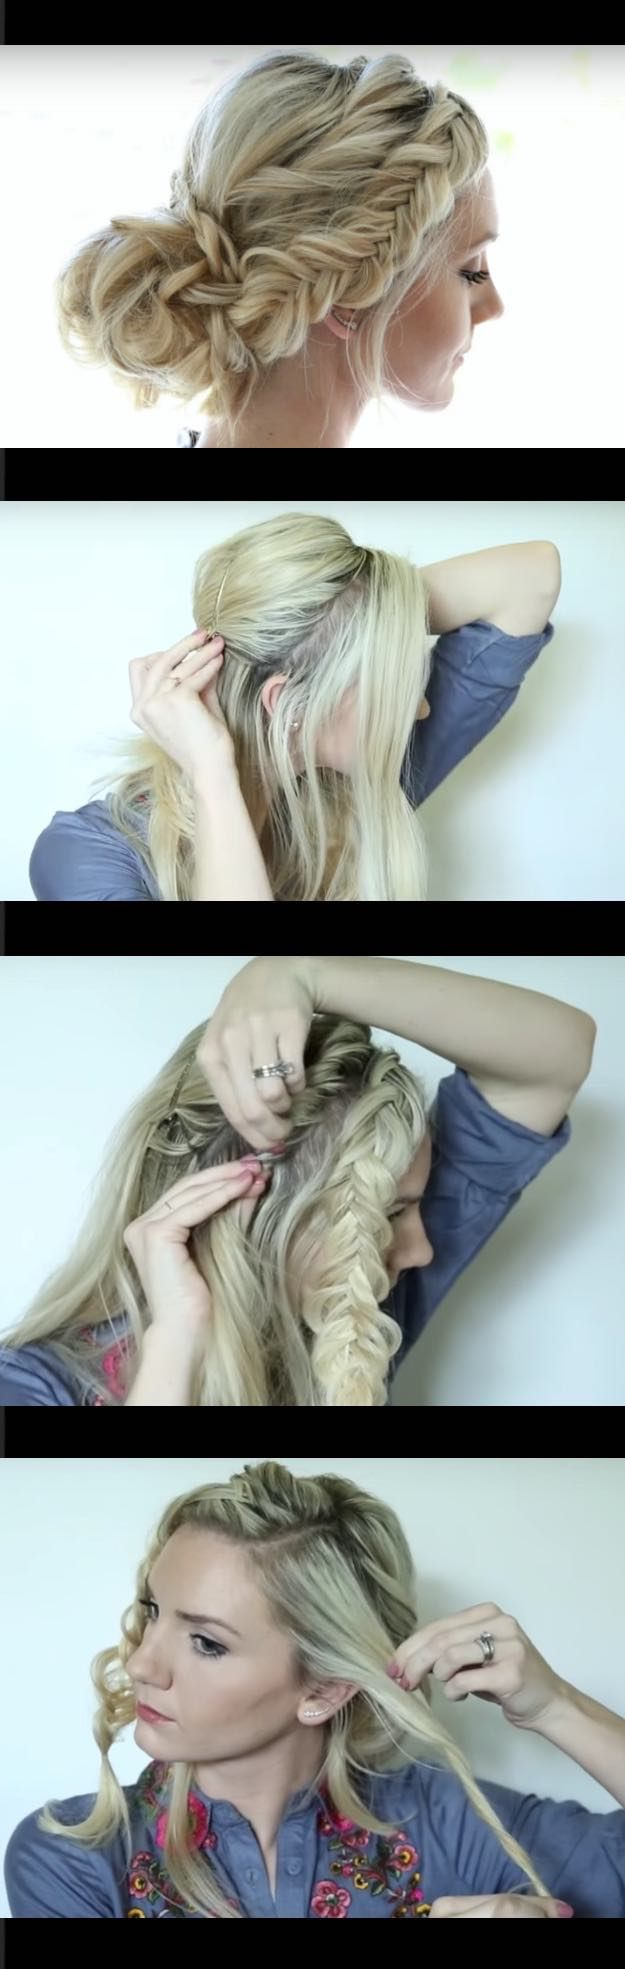 Quick and Easy Hairstyles for Straight Hair - Soft ...